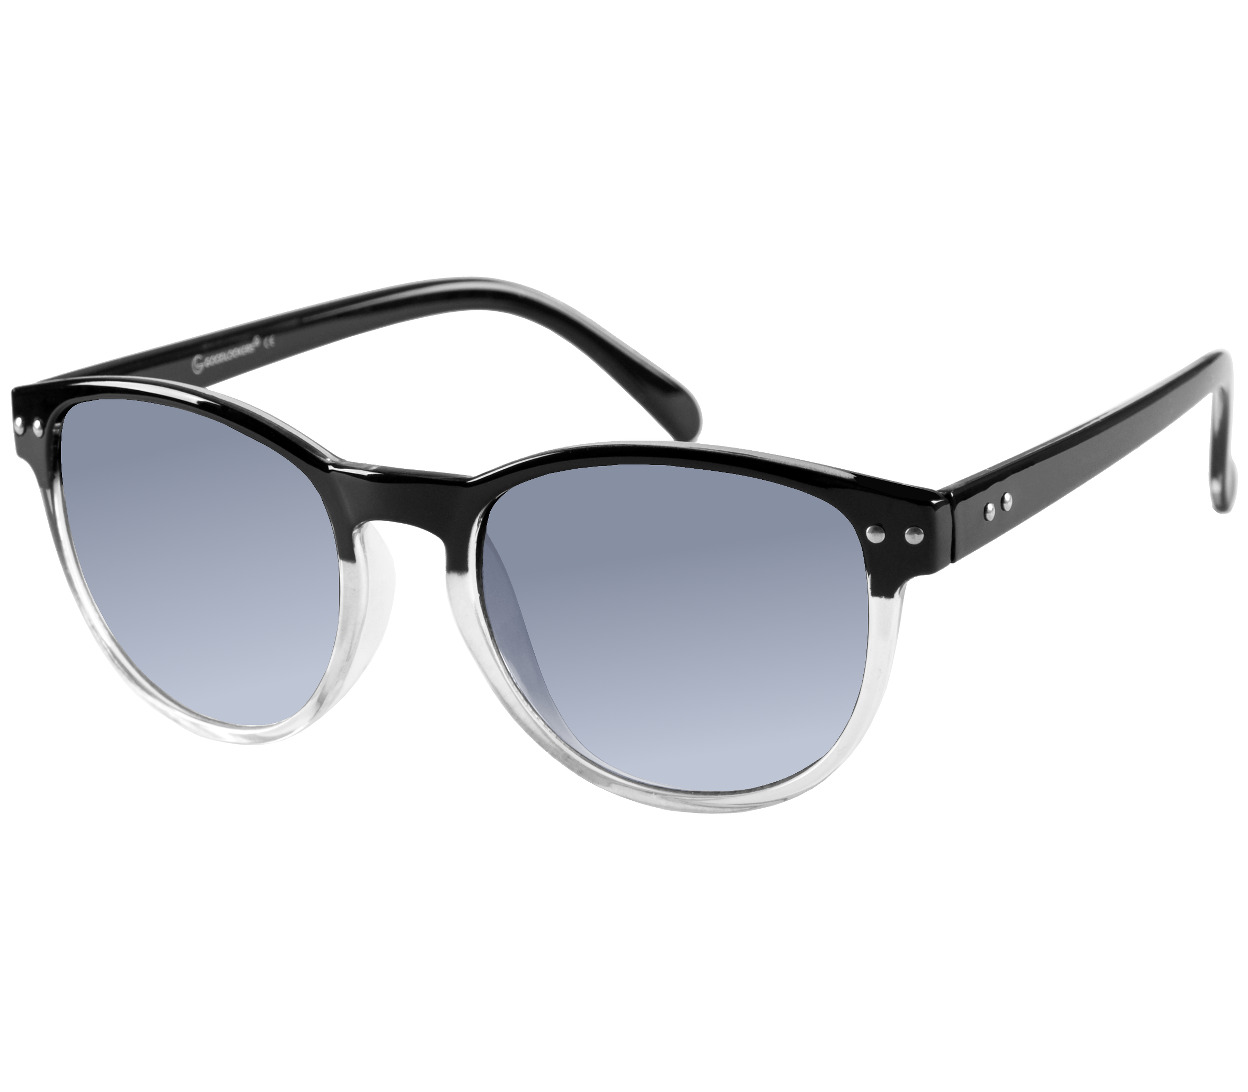 Main Image (Angle) - Newhaven (Black) Retro Sunglasses